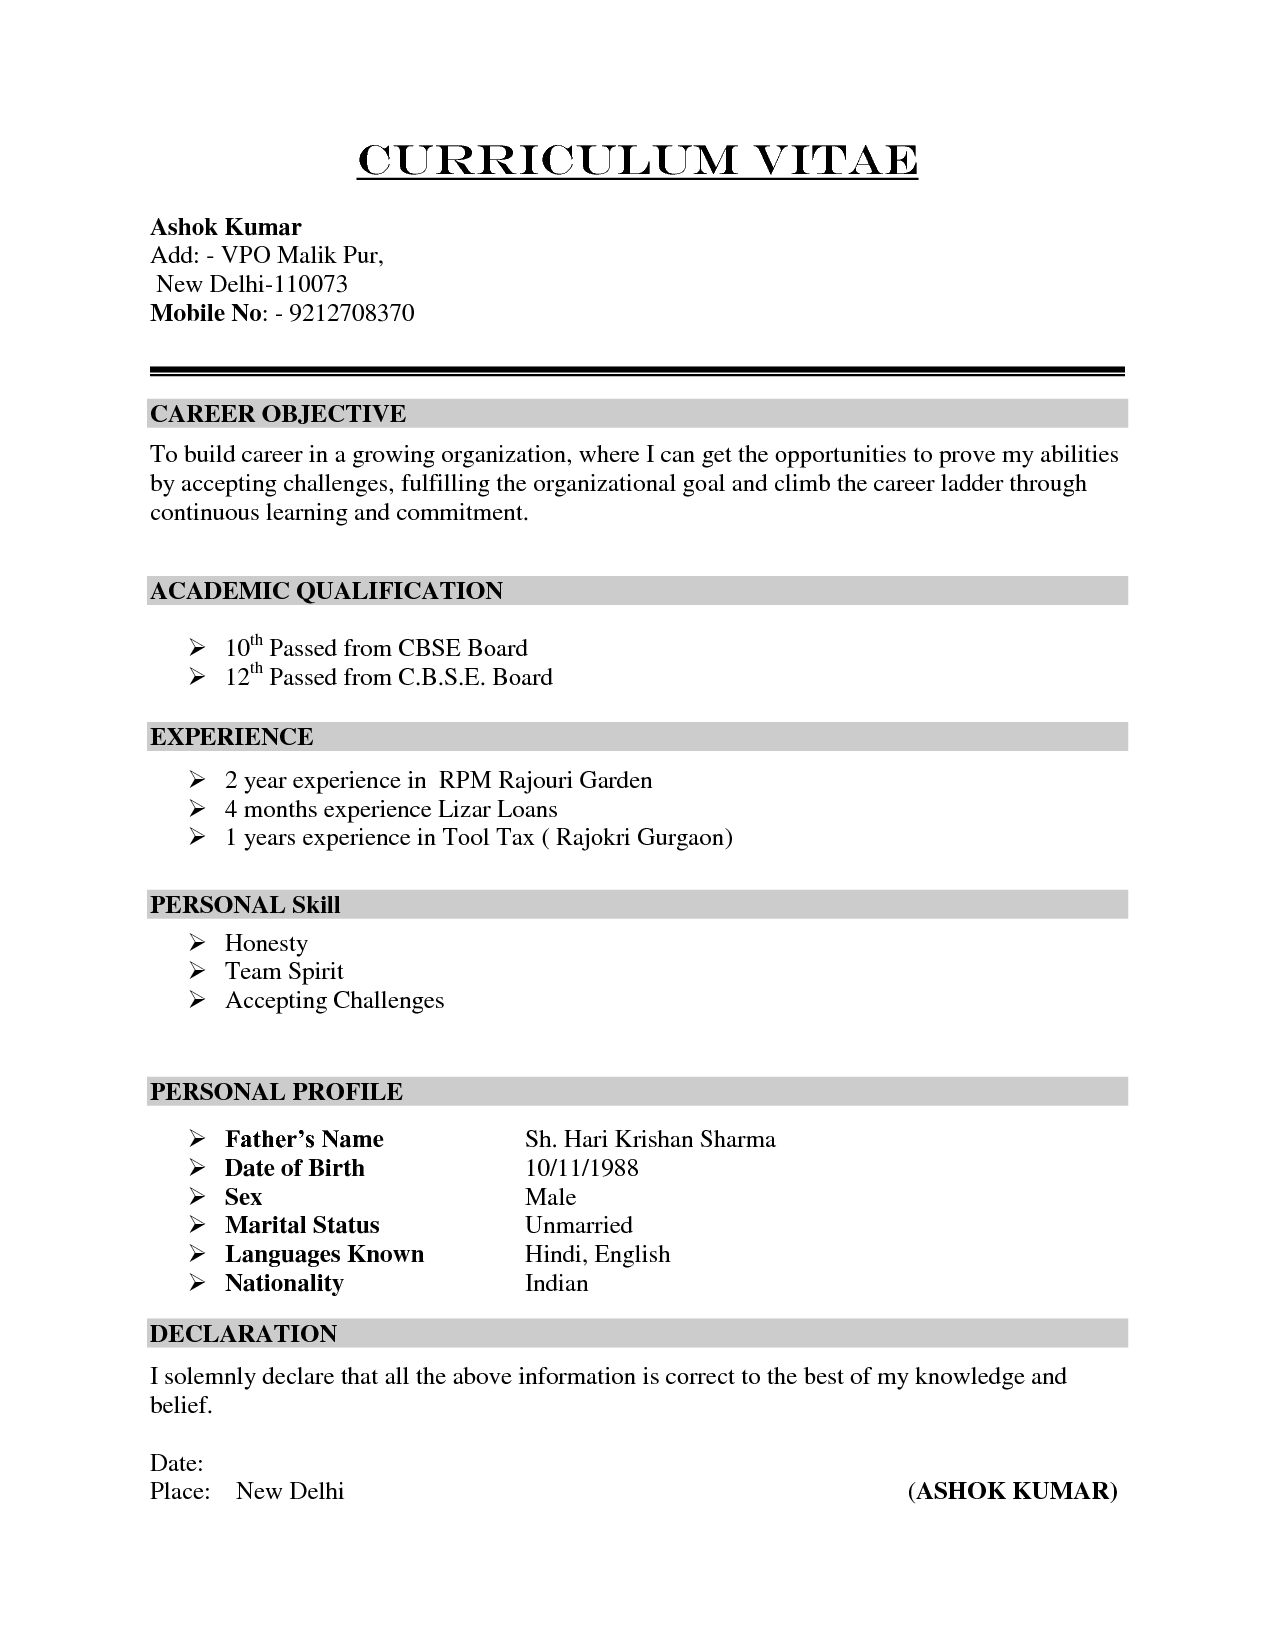 cv samples - Yahoo Image Search Results | ingles | Pinterest | Español